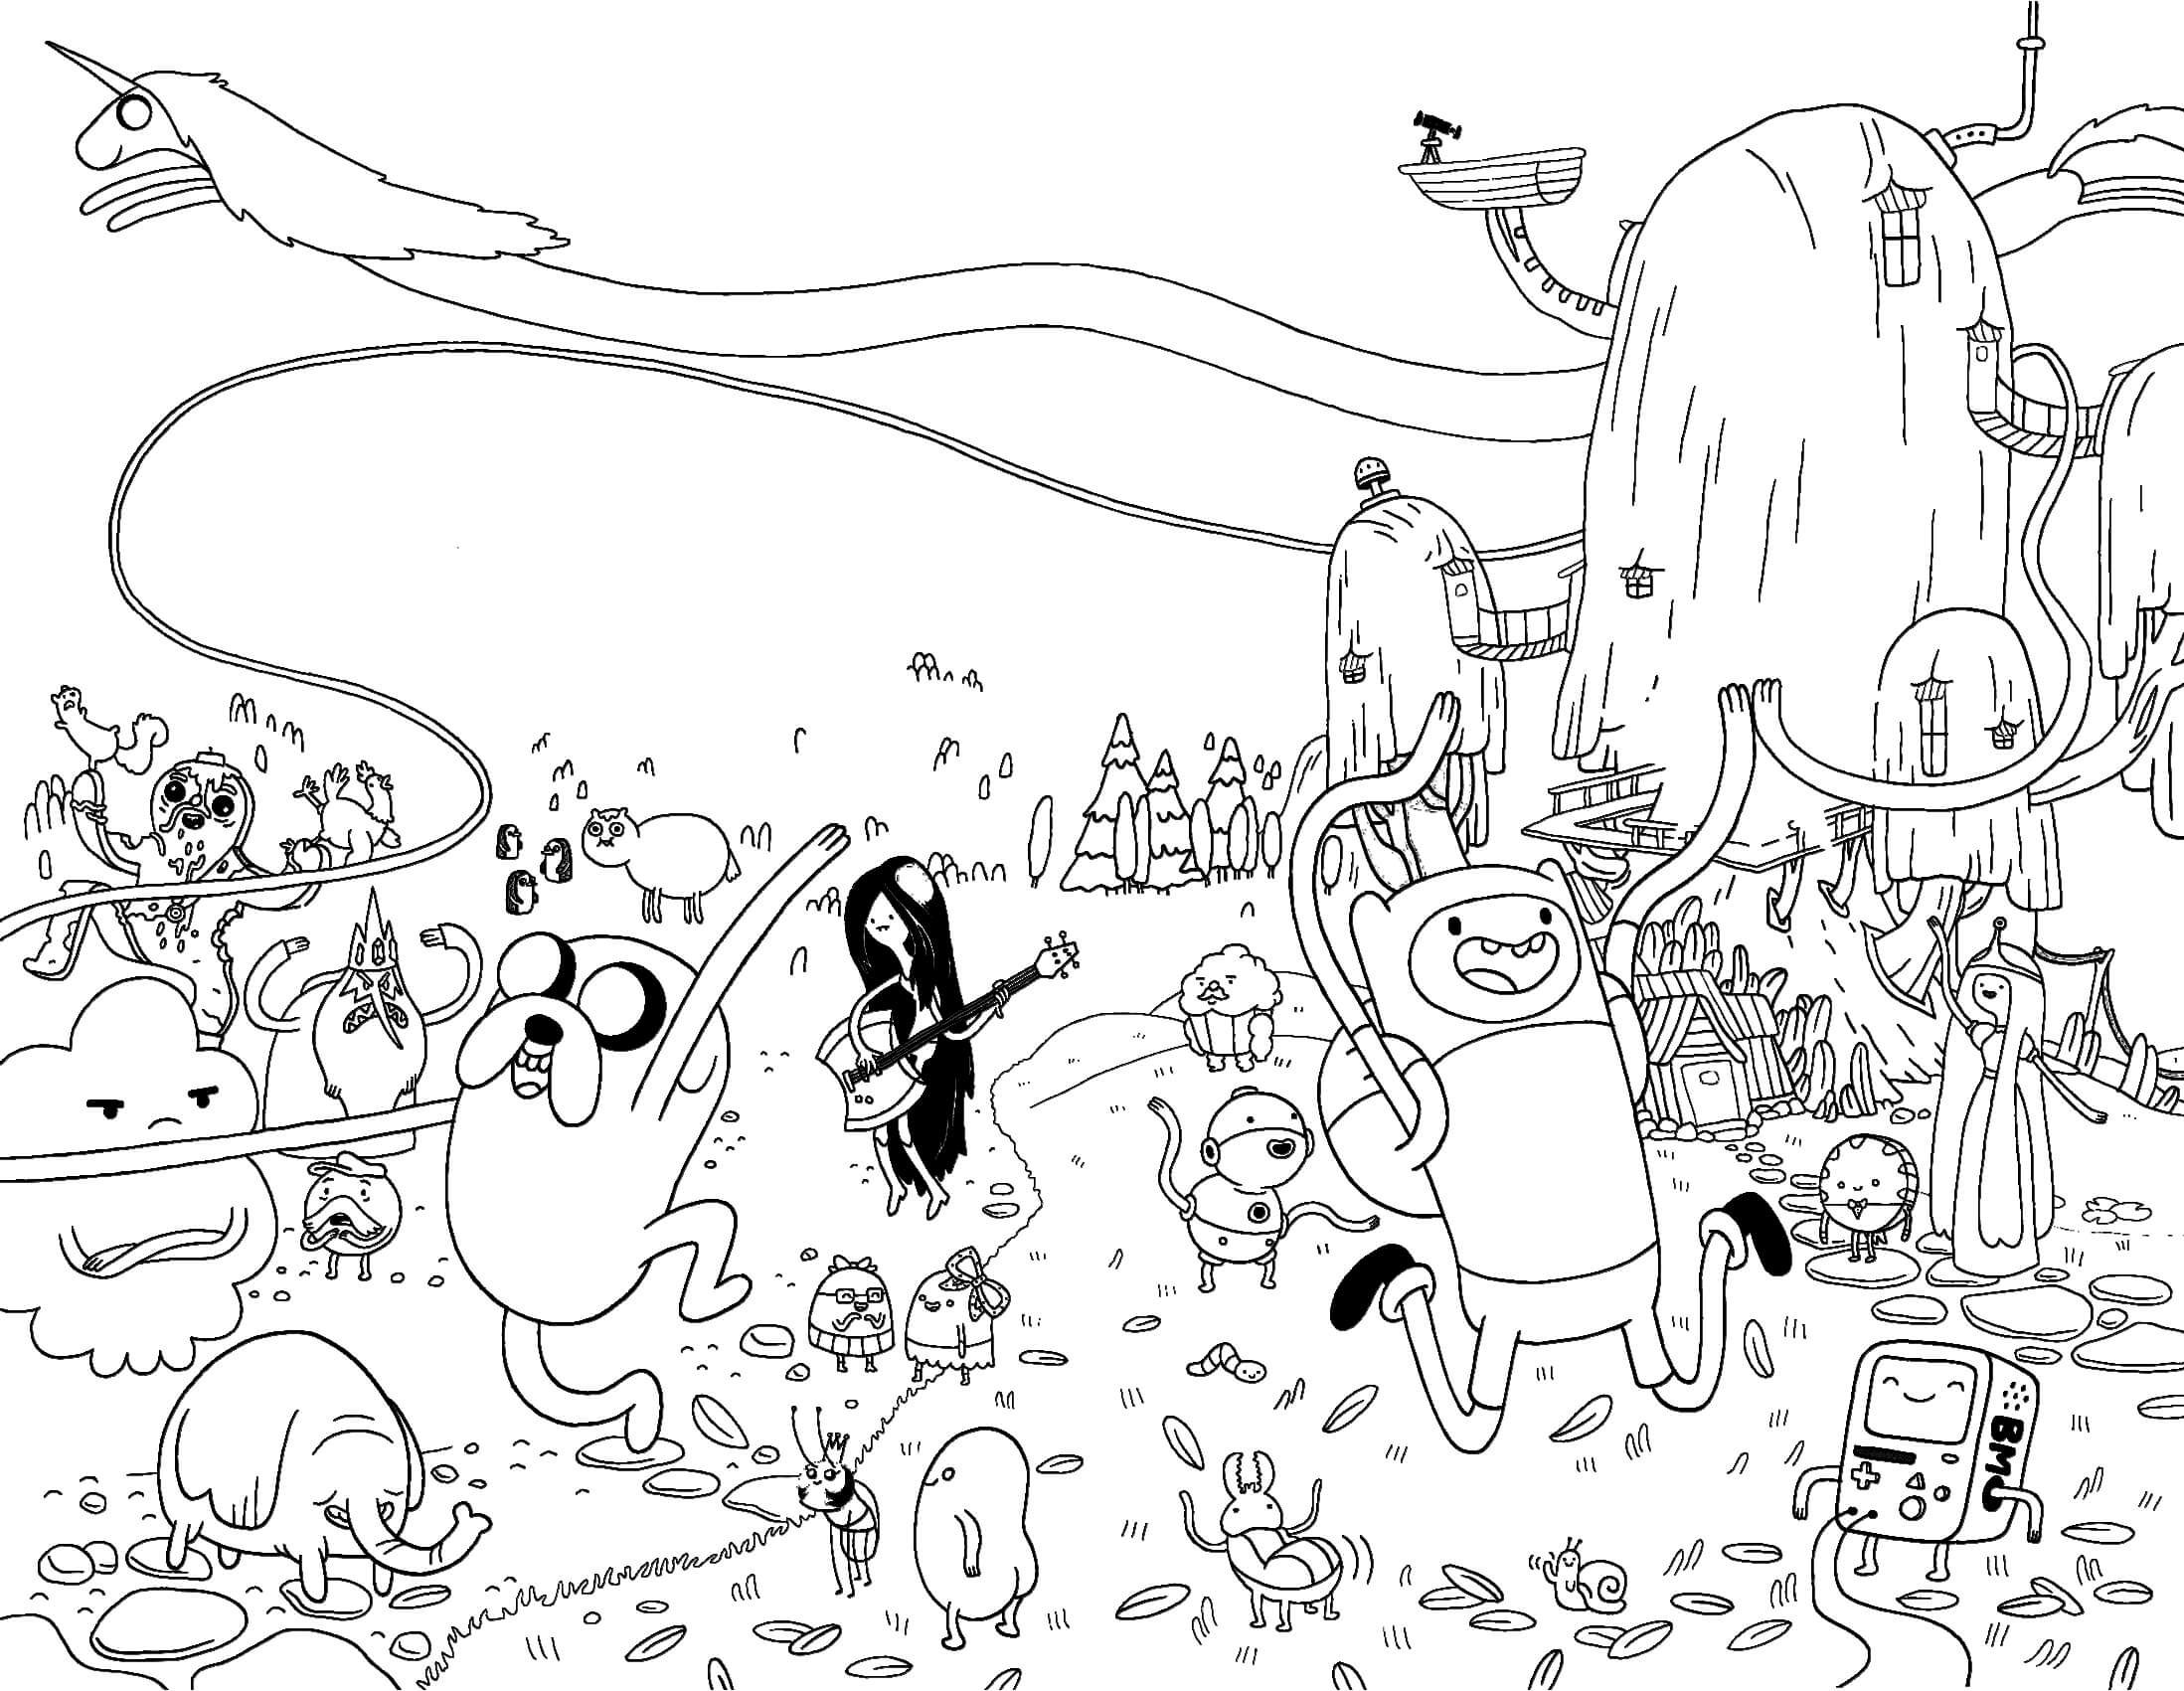 Uncategorized Adventure Time Coloring Pages To Print adventure time coloring pages4free printables pages pages